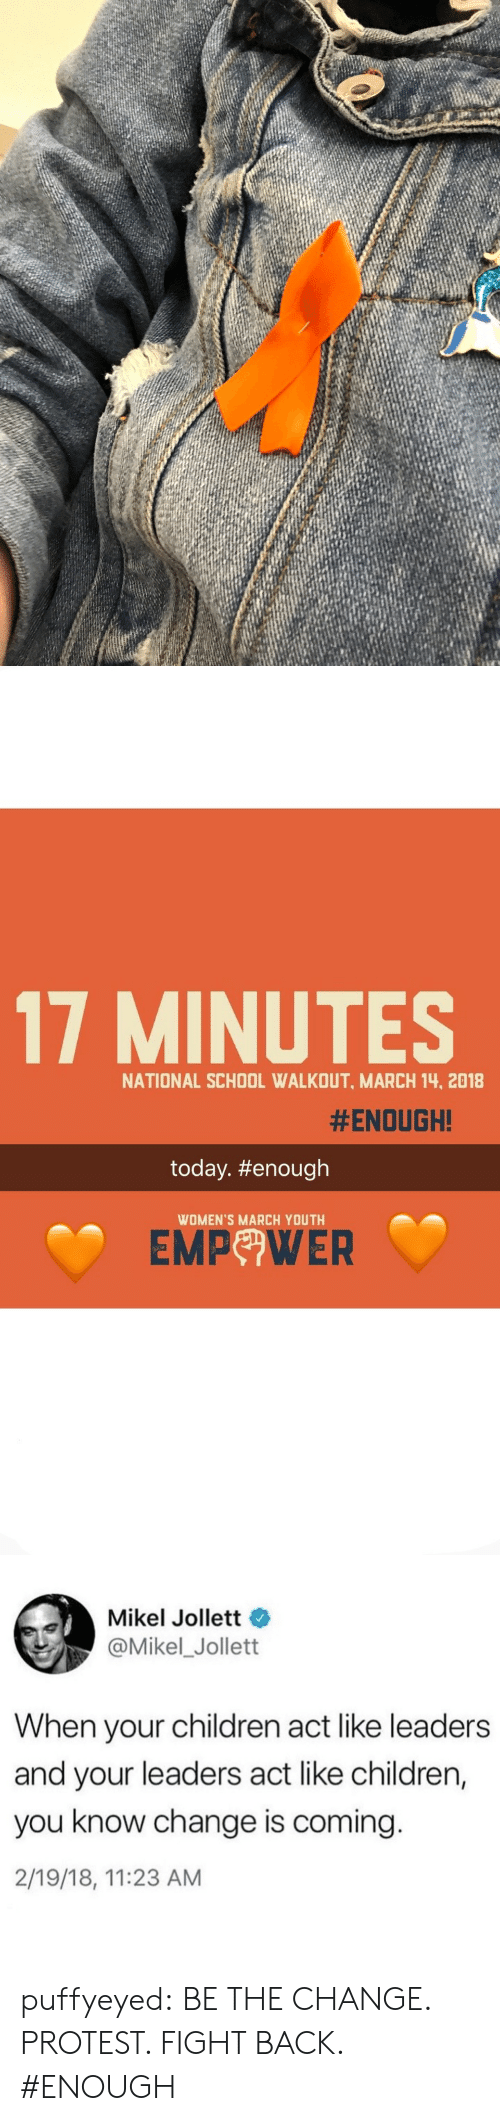 Children, Protest, and School: 17 MINUTES  NATIONAL SCHOOL WALKOUT, MARCH 14, 2018  #ENOUGH!  today. #enough  WOMEN'S MARCH YOUTH  EMP WER   Mikel Jollett  @Mikel_Jollett  When your children act like leaders  and your leaders act like children,  you know change is coming  2/19/18, 11:23 AM puffyeyed:  BE THE CHANGE. PROTEST. FIGHT BACK. #ENOUGH